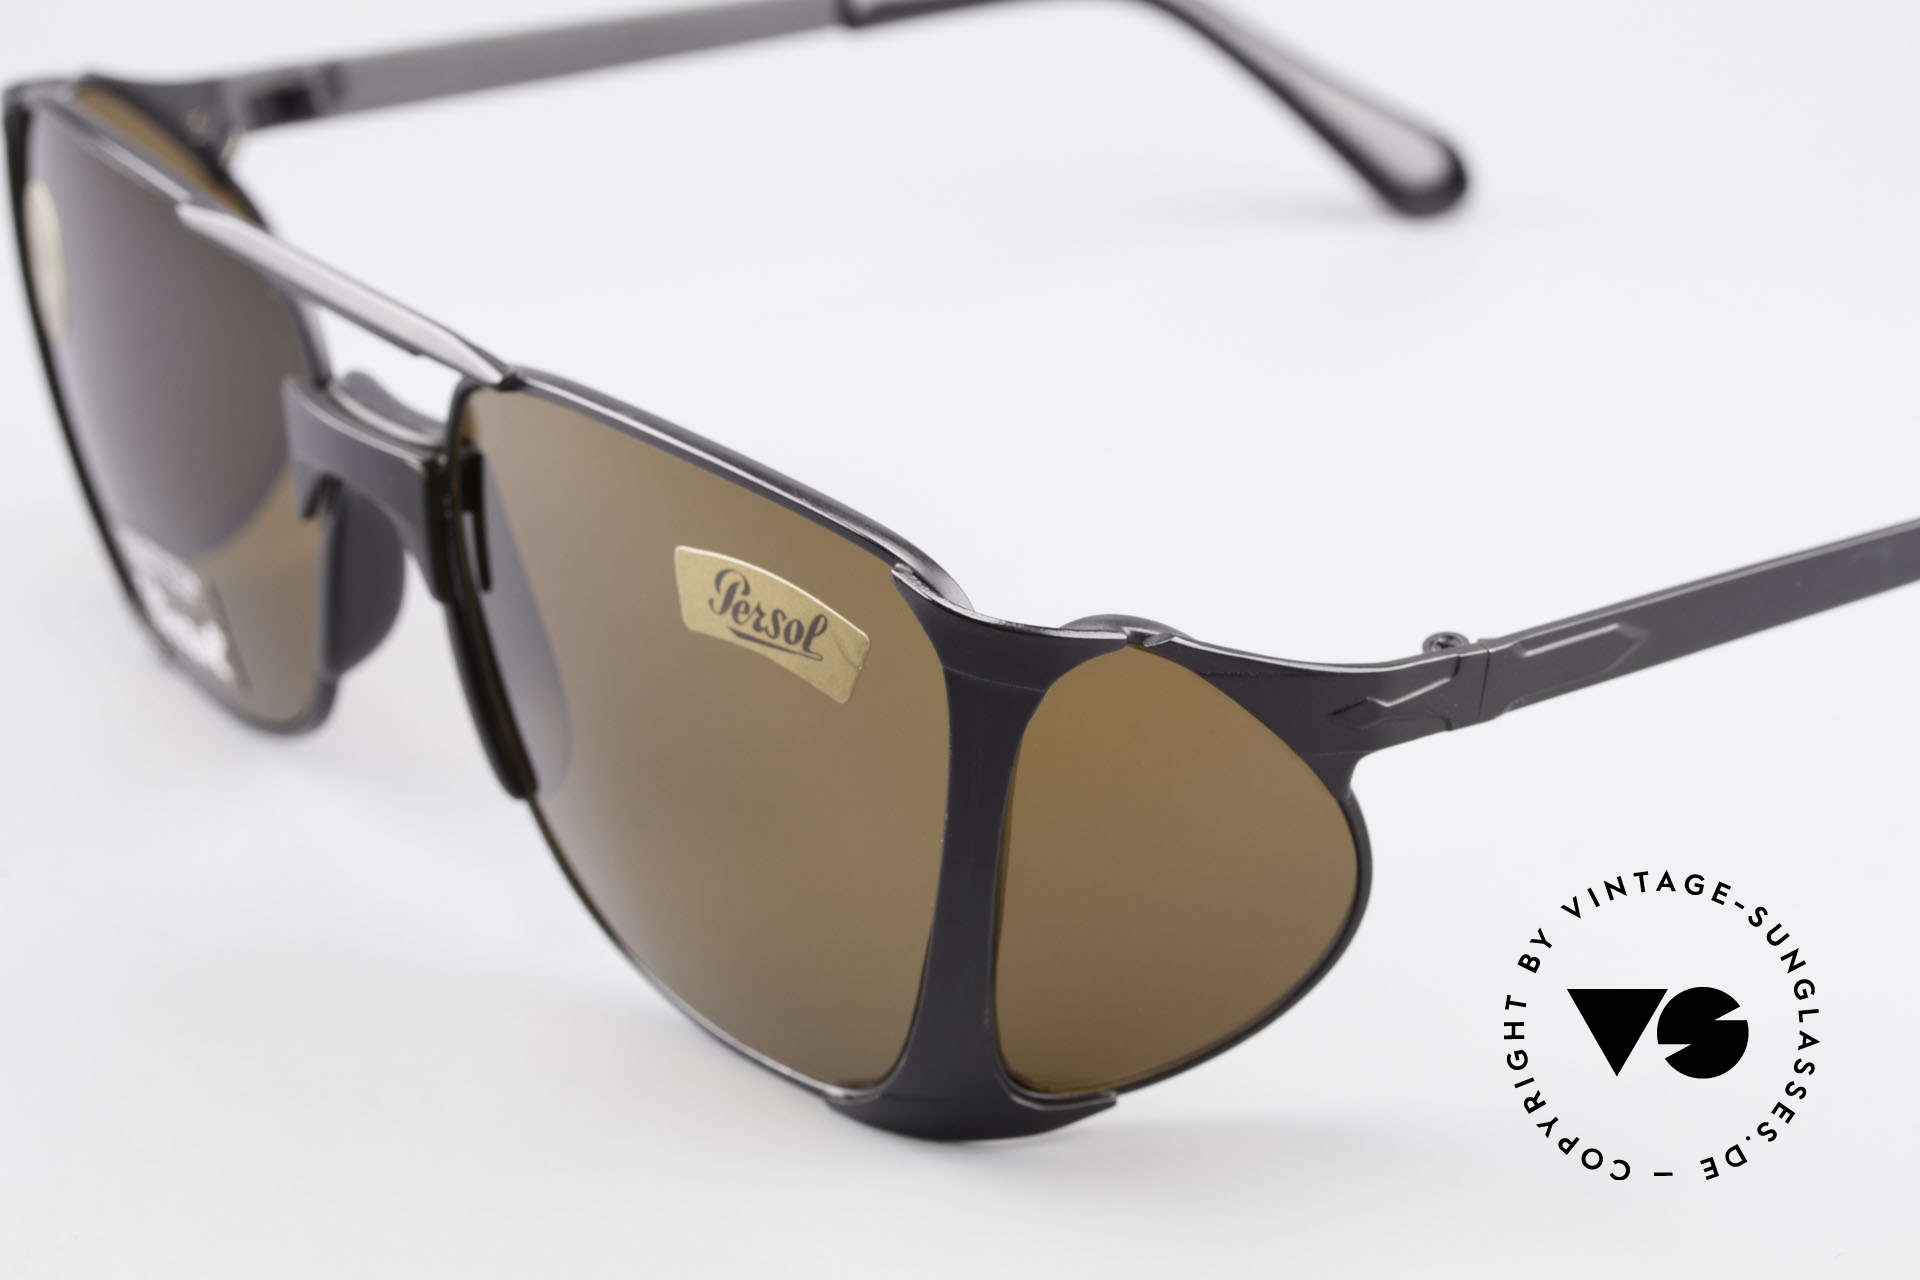 Persol 009 Ratti VIP Vintage 4lenses Nasa Shades, MODEL VIP = matt black special edition from the 80s, Made for Men